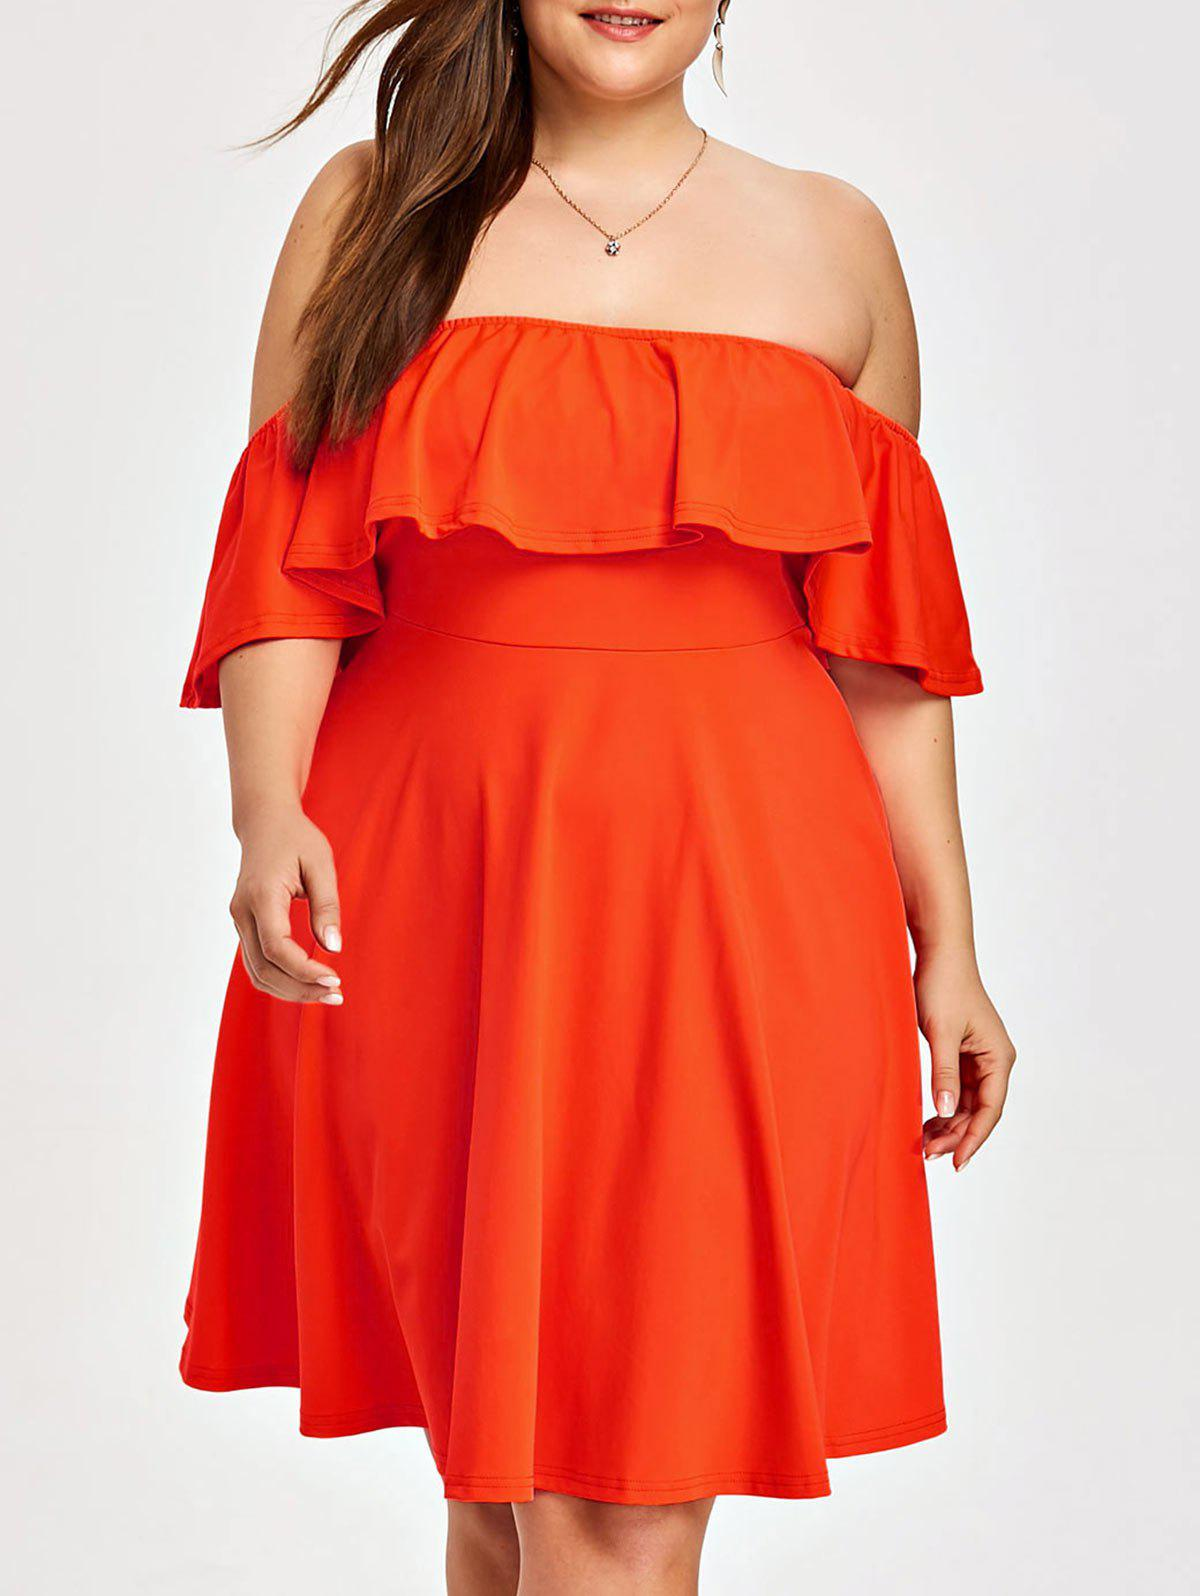 651a8272de9 38% OFF  Plus Size Flounce Off The Shoulder Dress